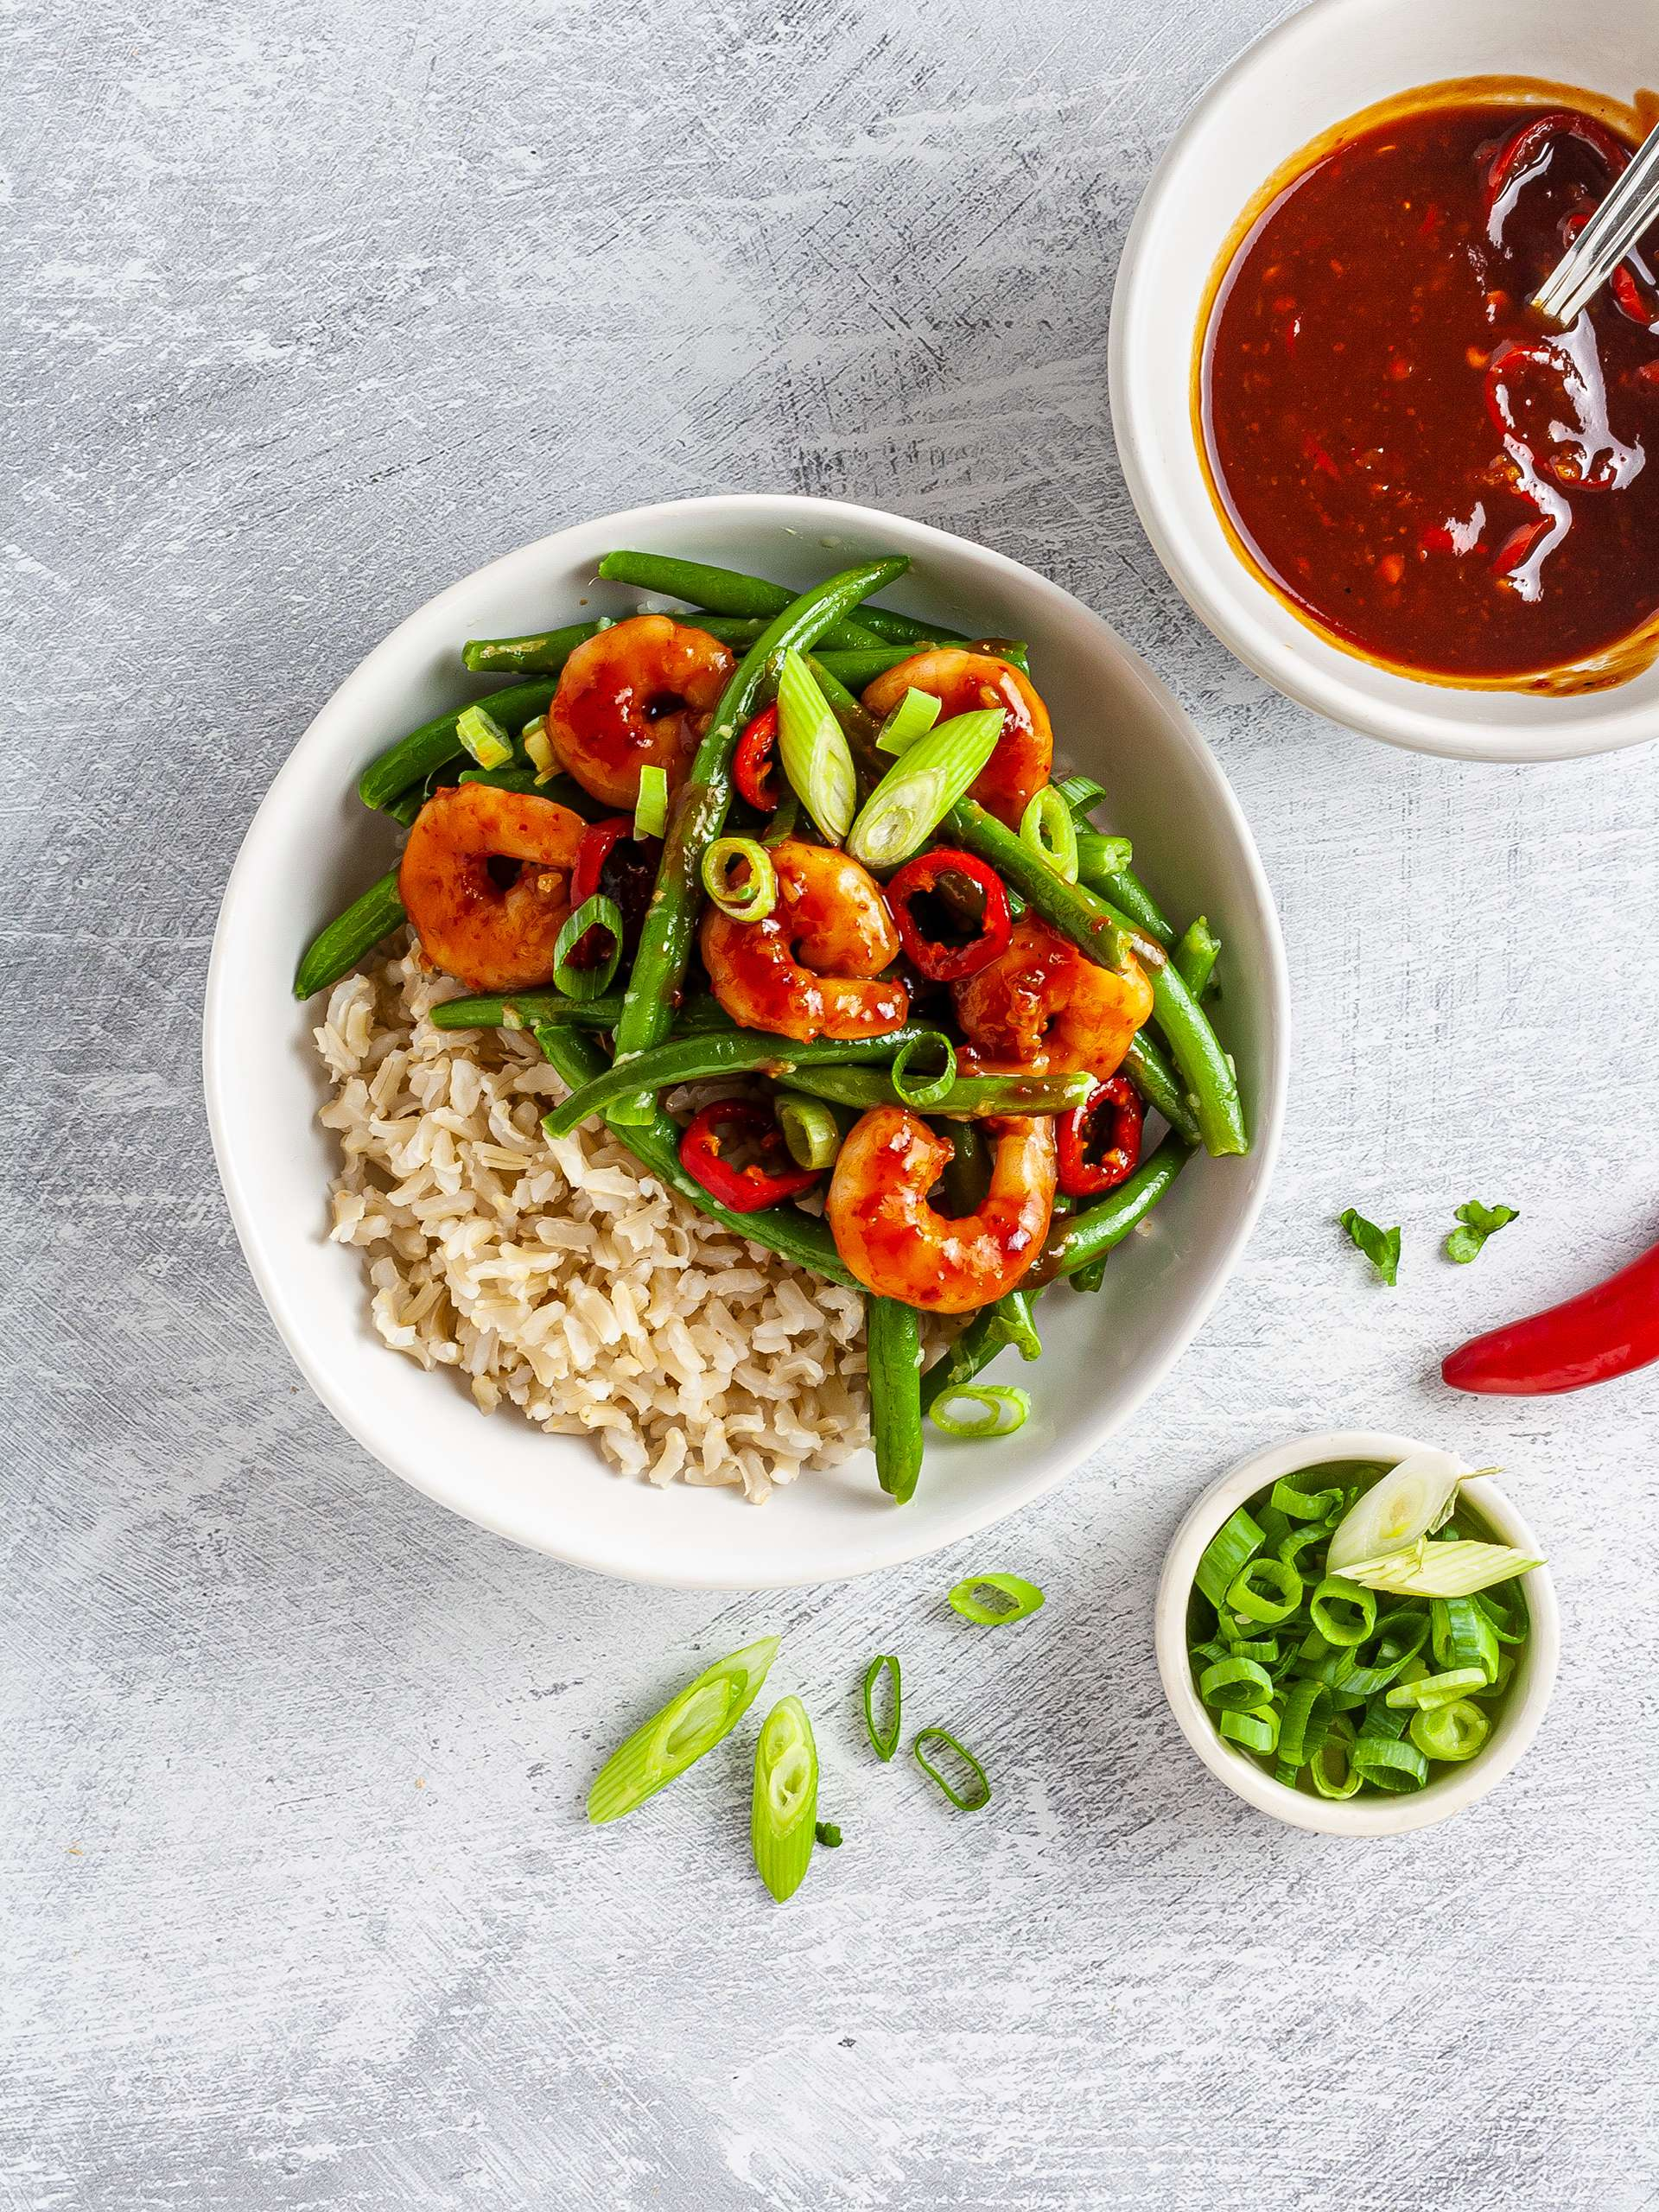 Sweet chili prawns bowl with brown rice, green beans, and spring onions